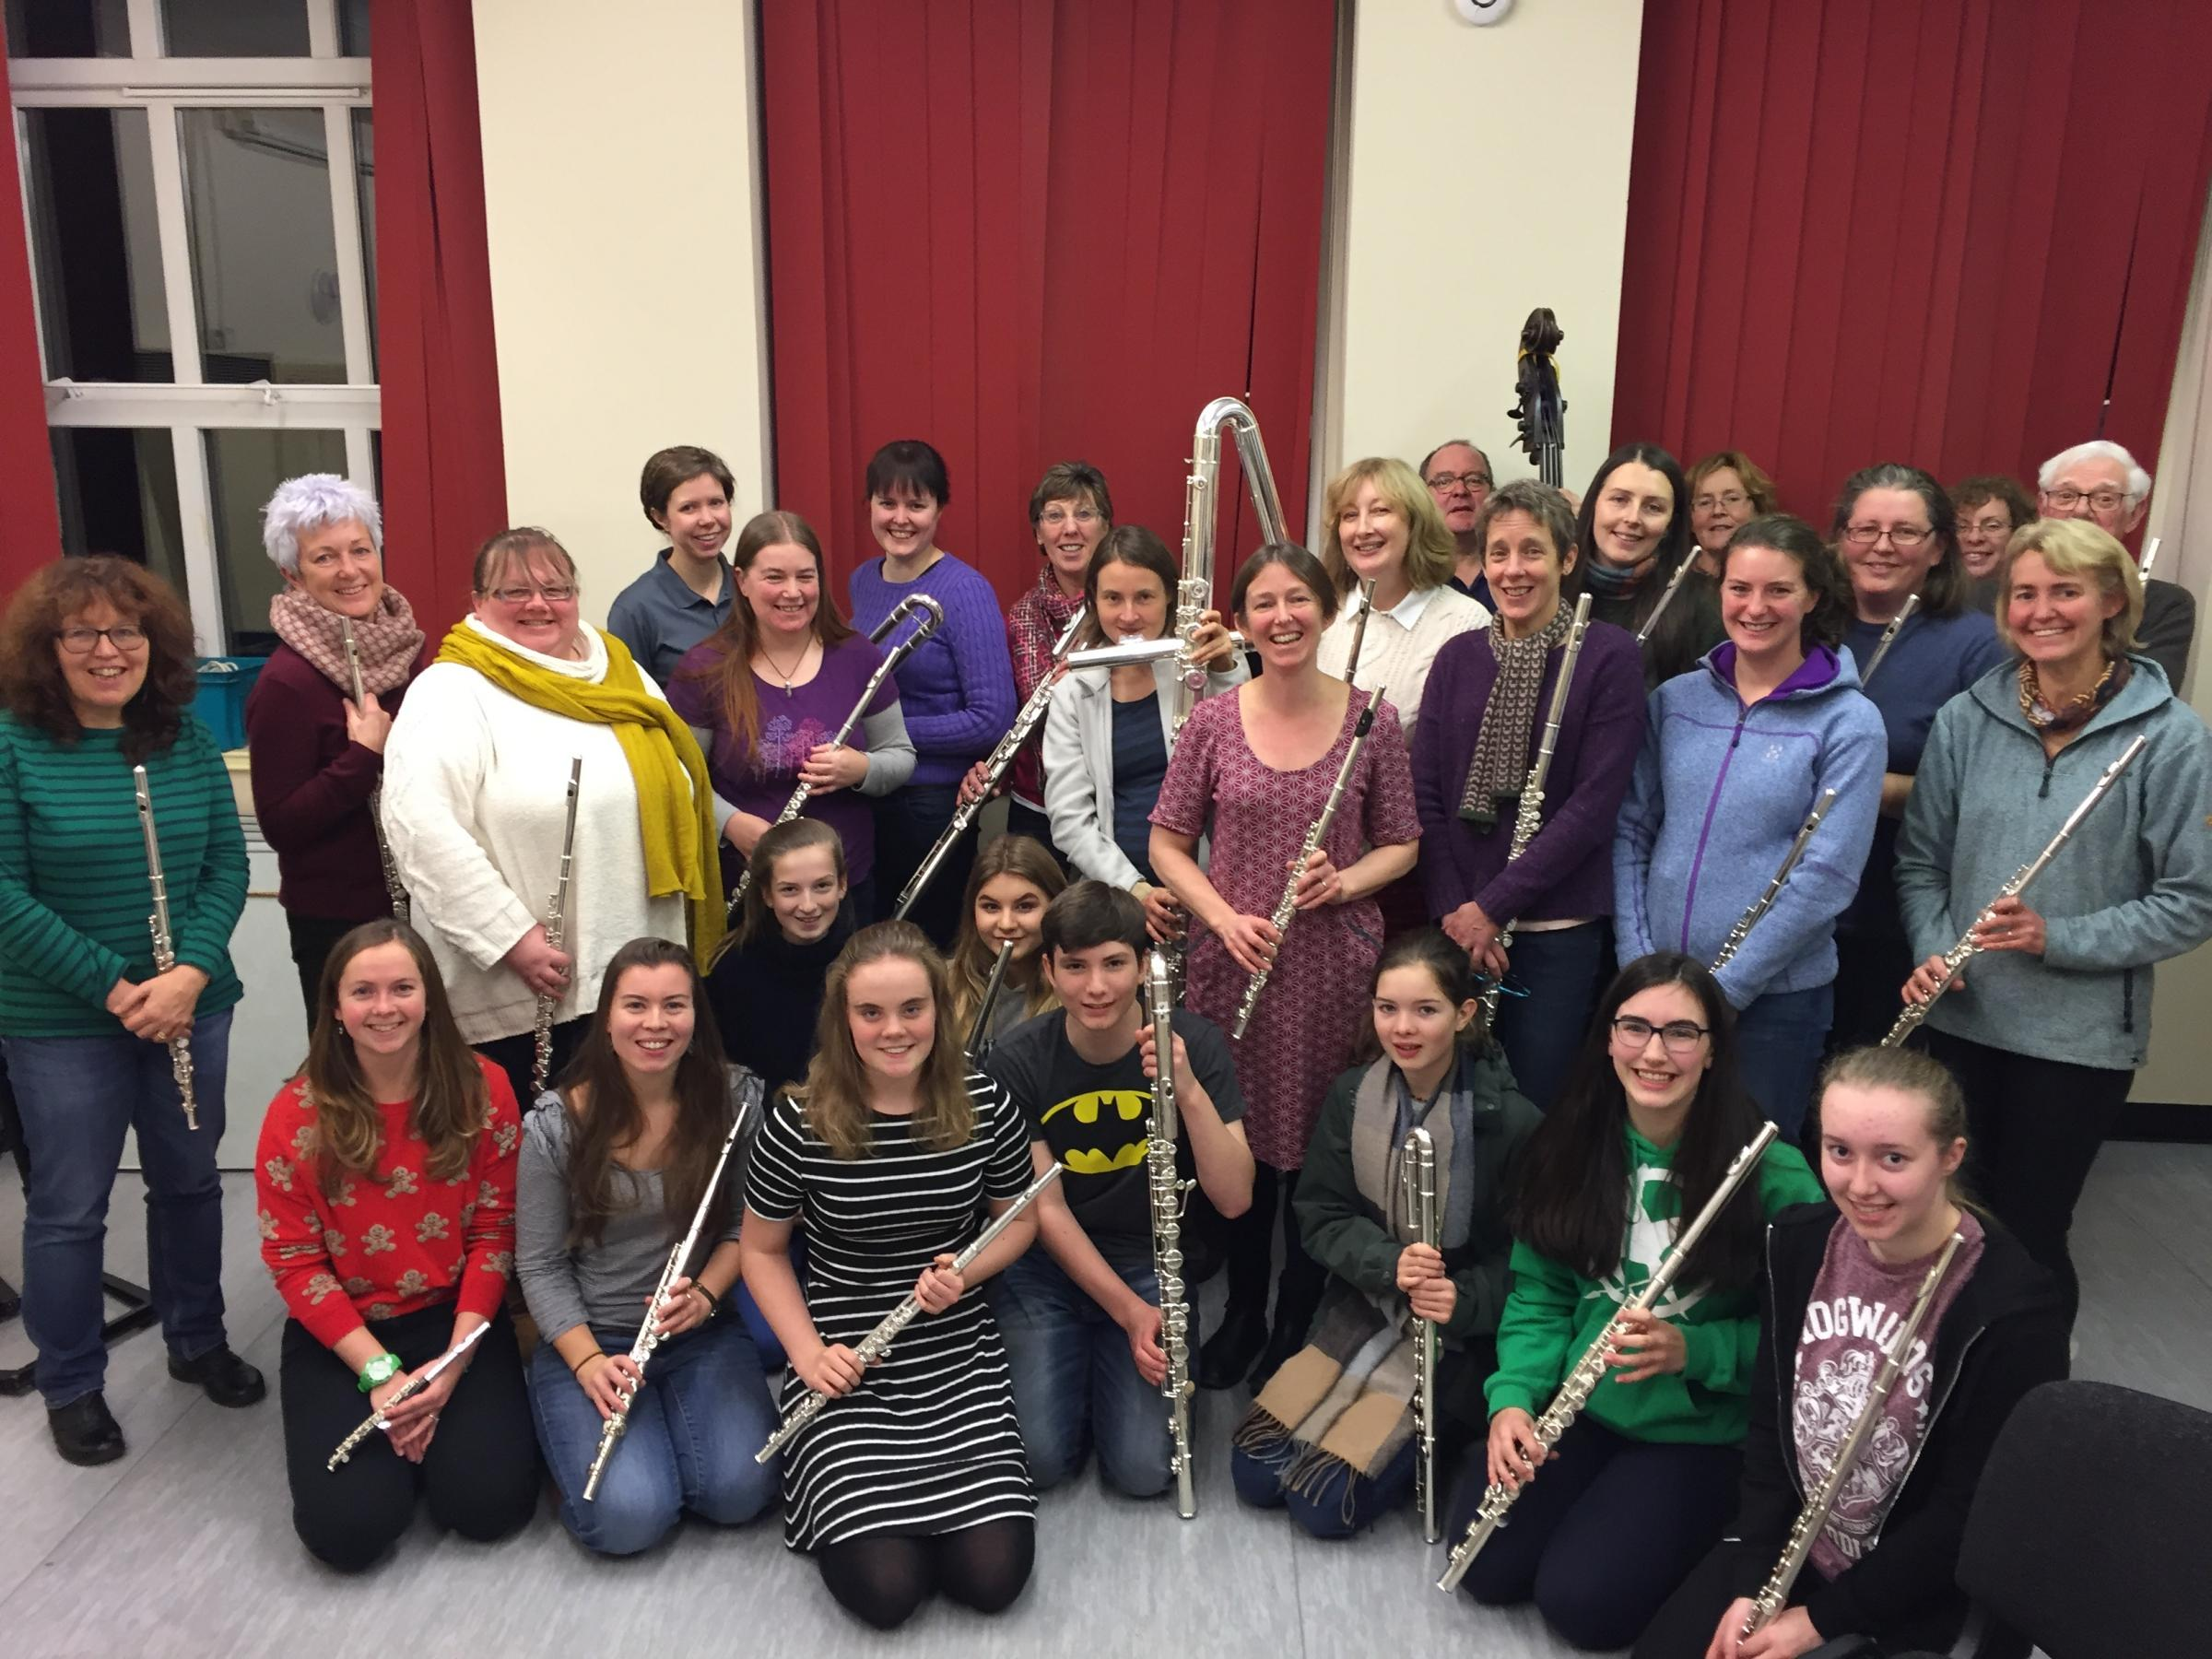 Flutes and Co stage a family-friendly Not Just a Christmas concert on Sunday, December 10 (3pm) at St Anne's Church, Ings, led by musical director, Sue Nicholls